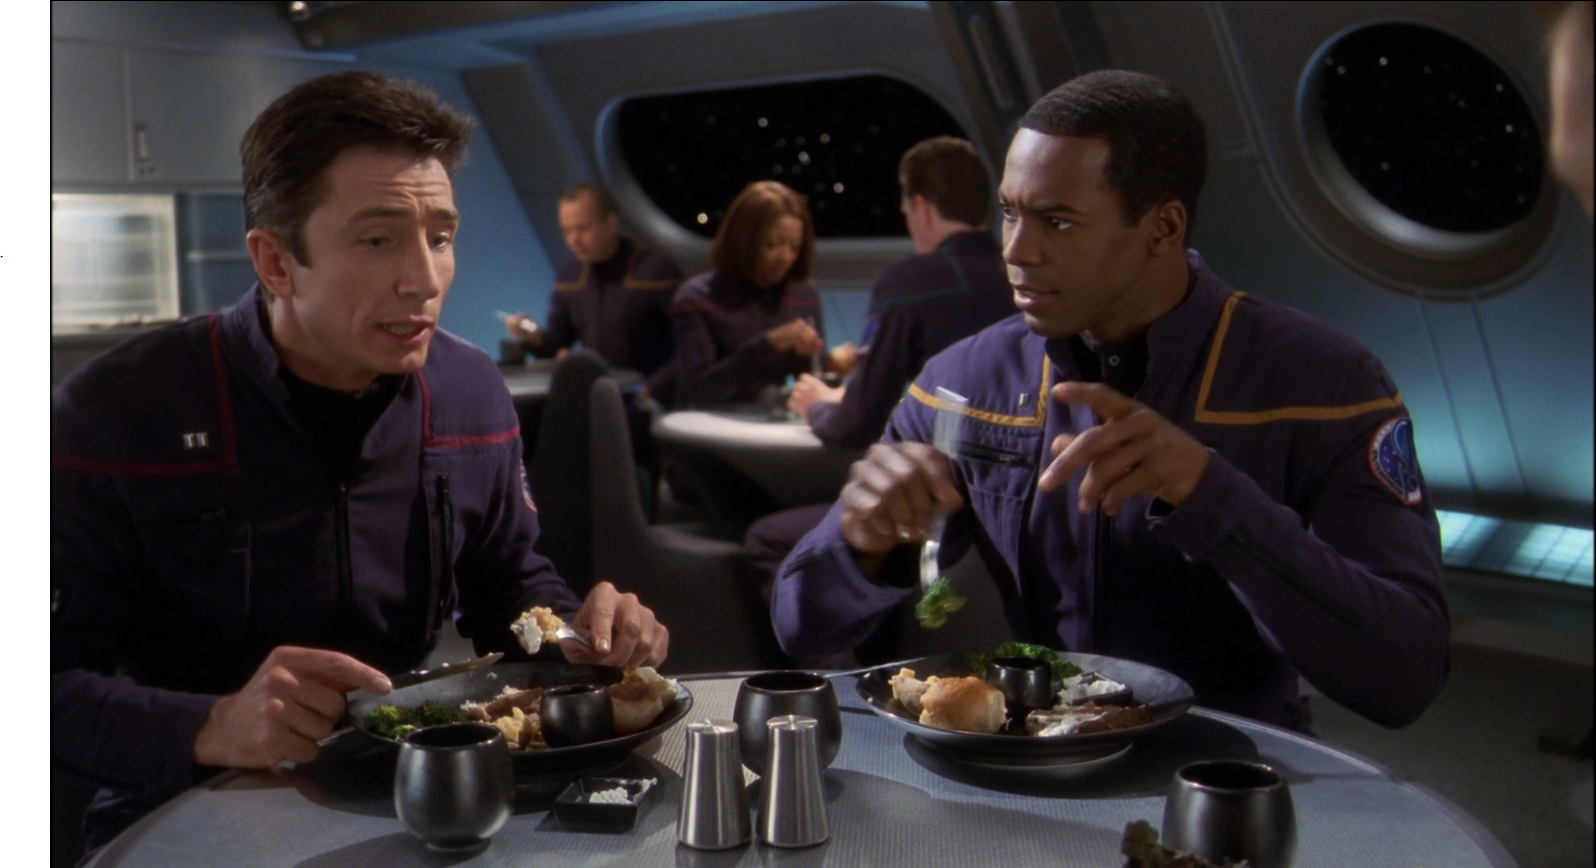 Dominic Keating as Malcom Reed and Anthony Montgomery as Travis Mayweather - Vox Sola - Enterprise Star Trek Enterprise Season 1 Blu-ray Review